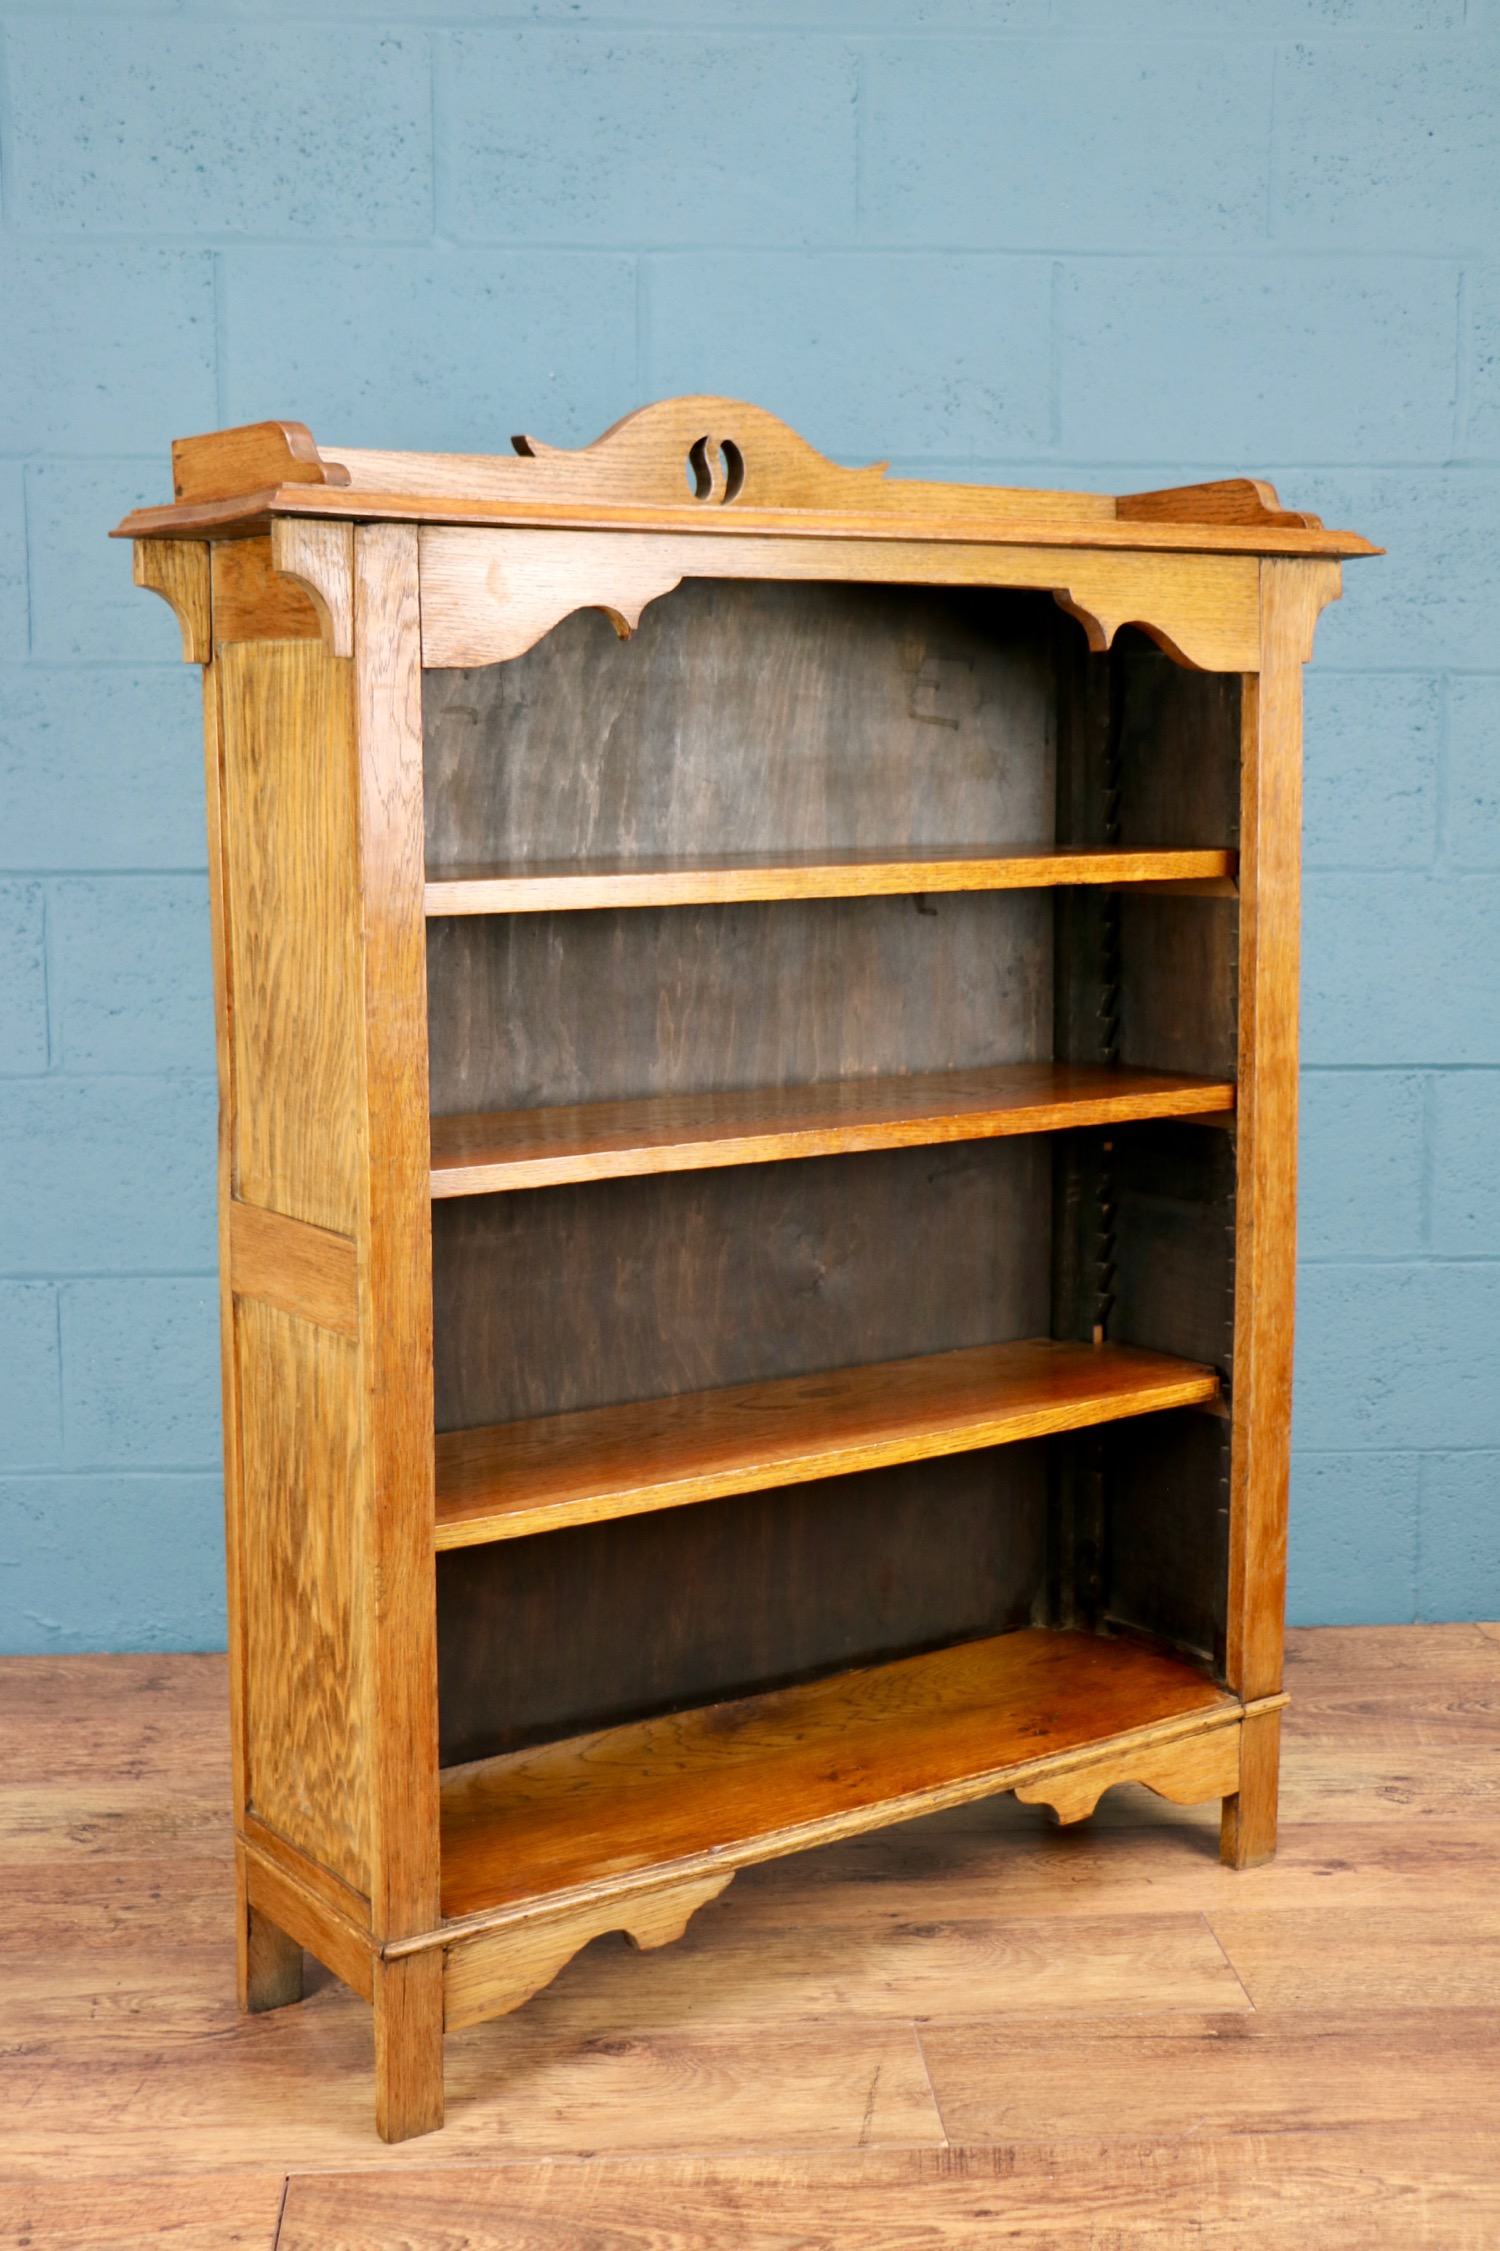 - An excellent bookcase. Very pleased with it, and it arrived promptly. Richard, London